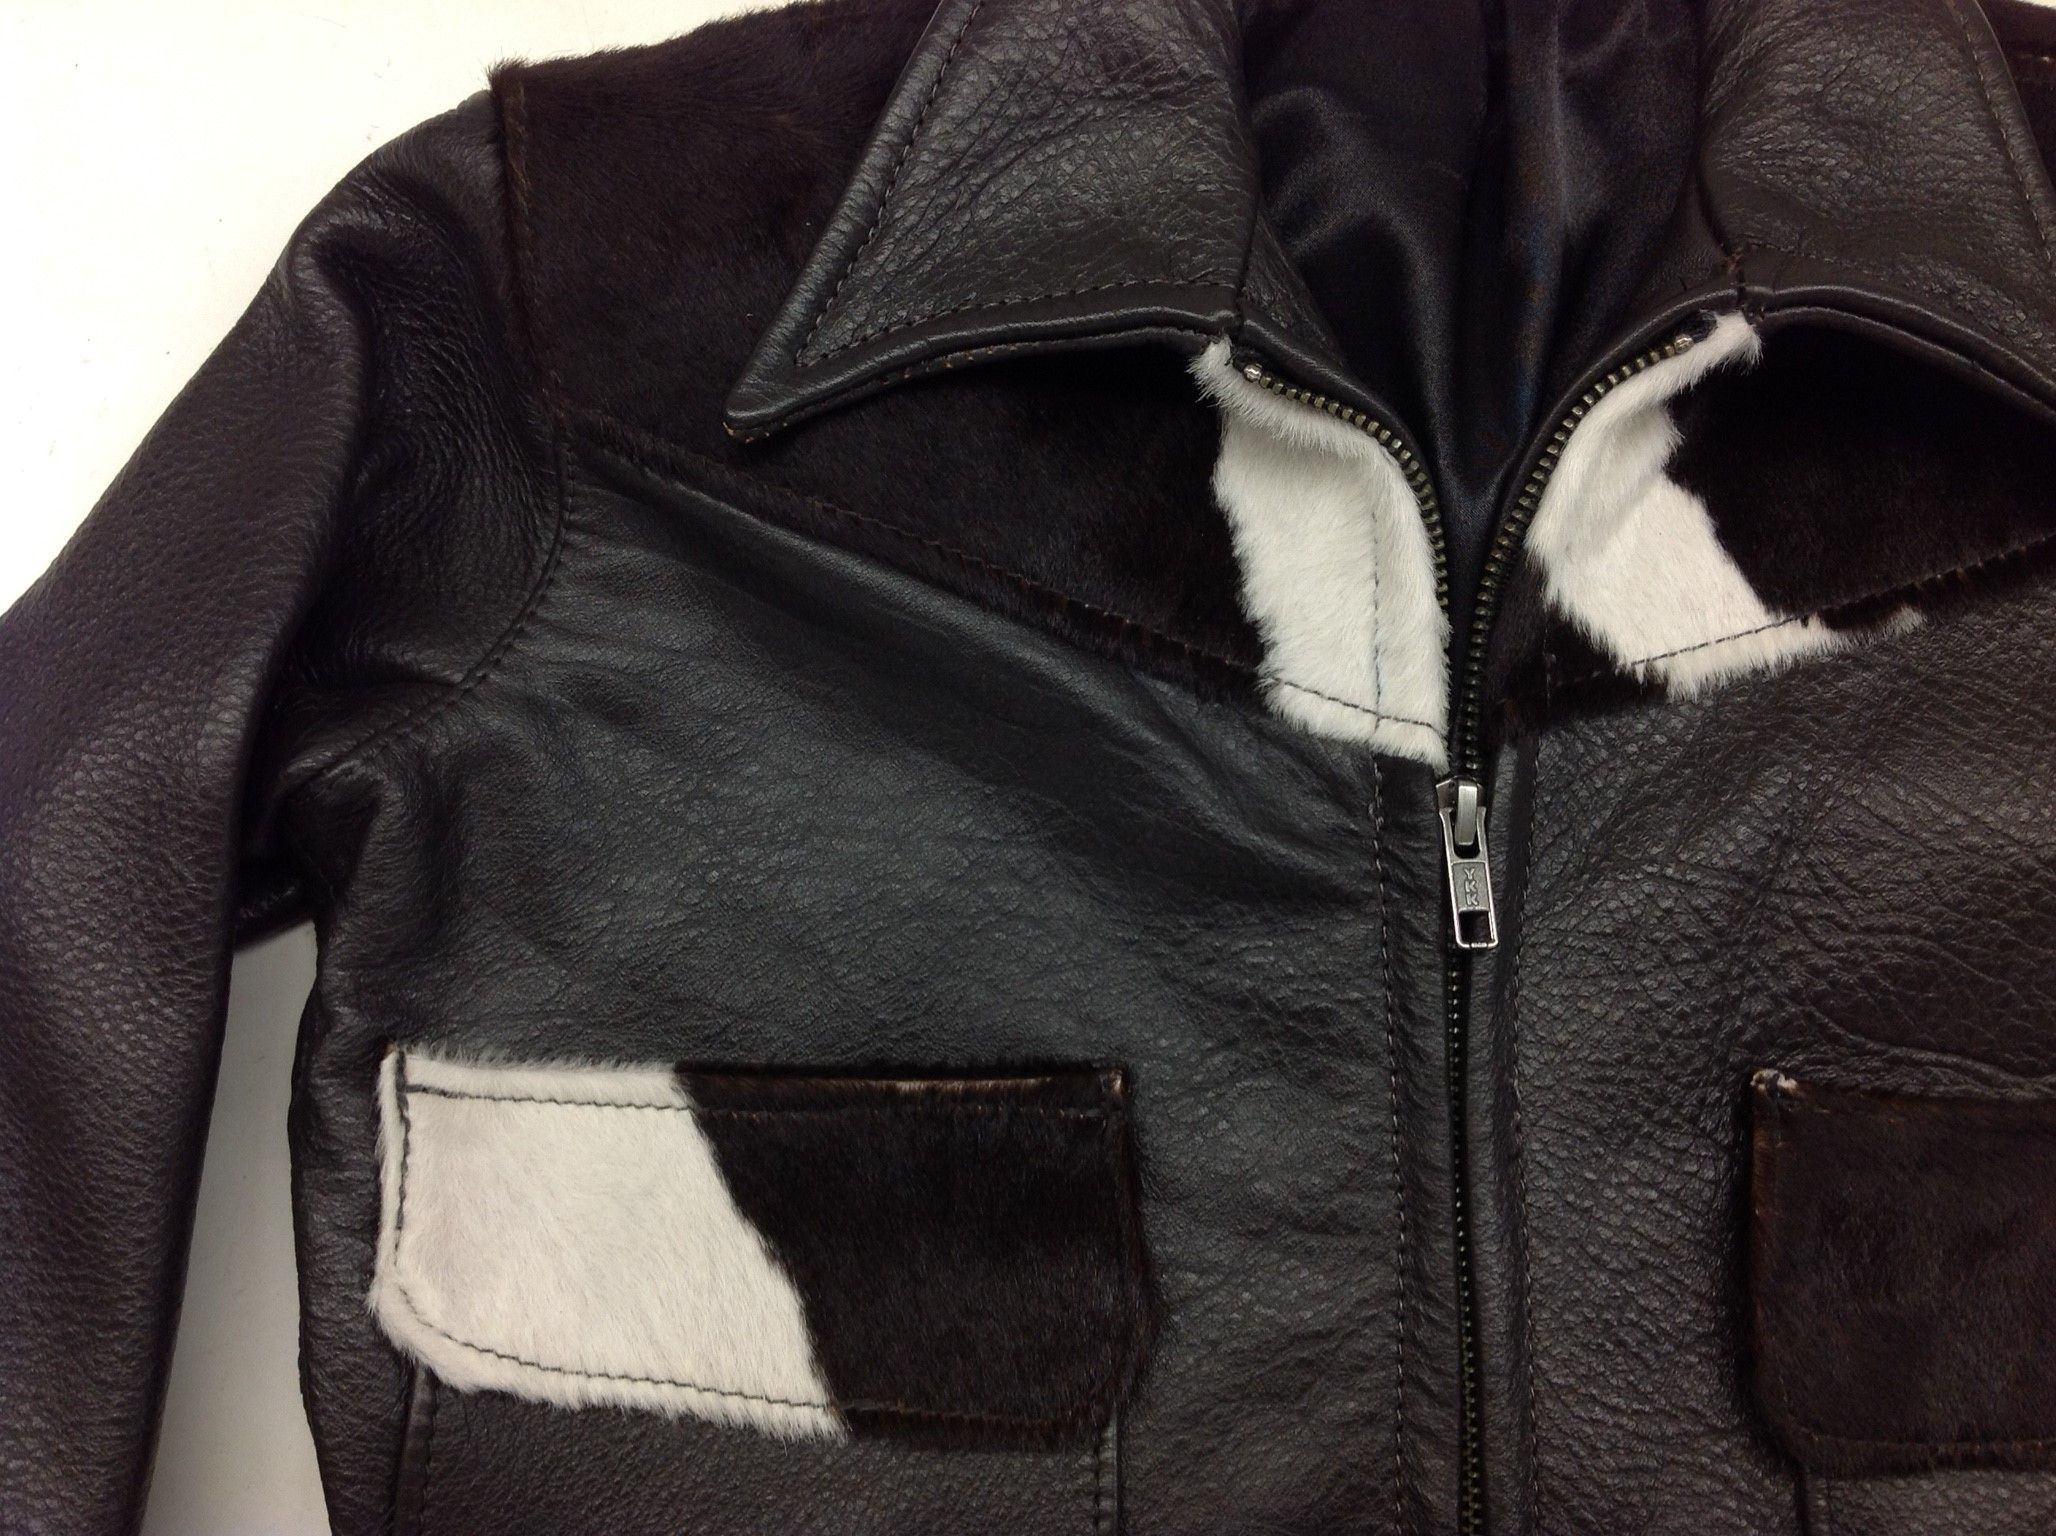 We Create Only The Finest Handmade Leather Jackets For You And Your Children Contact Cal Leather At 805 643 4022 Leather Jacket Fashion Leather Handmade [ 1536 x 2056 Pixel ]